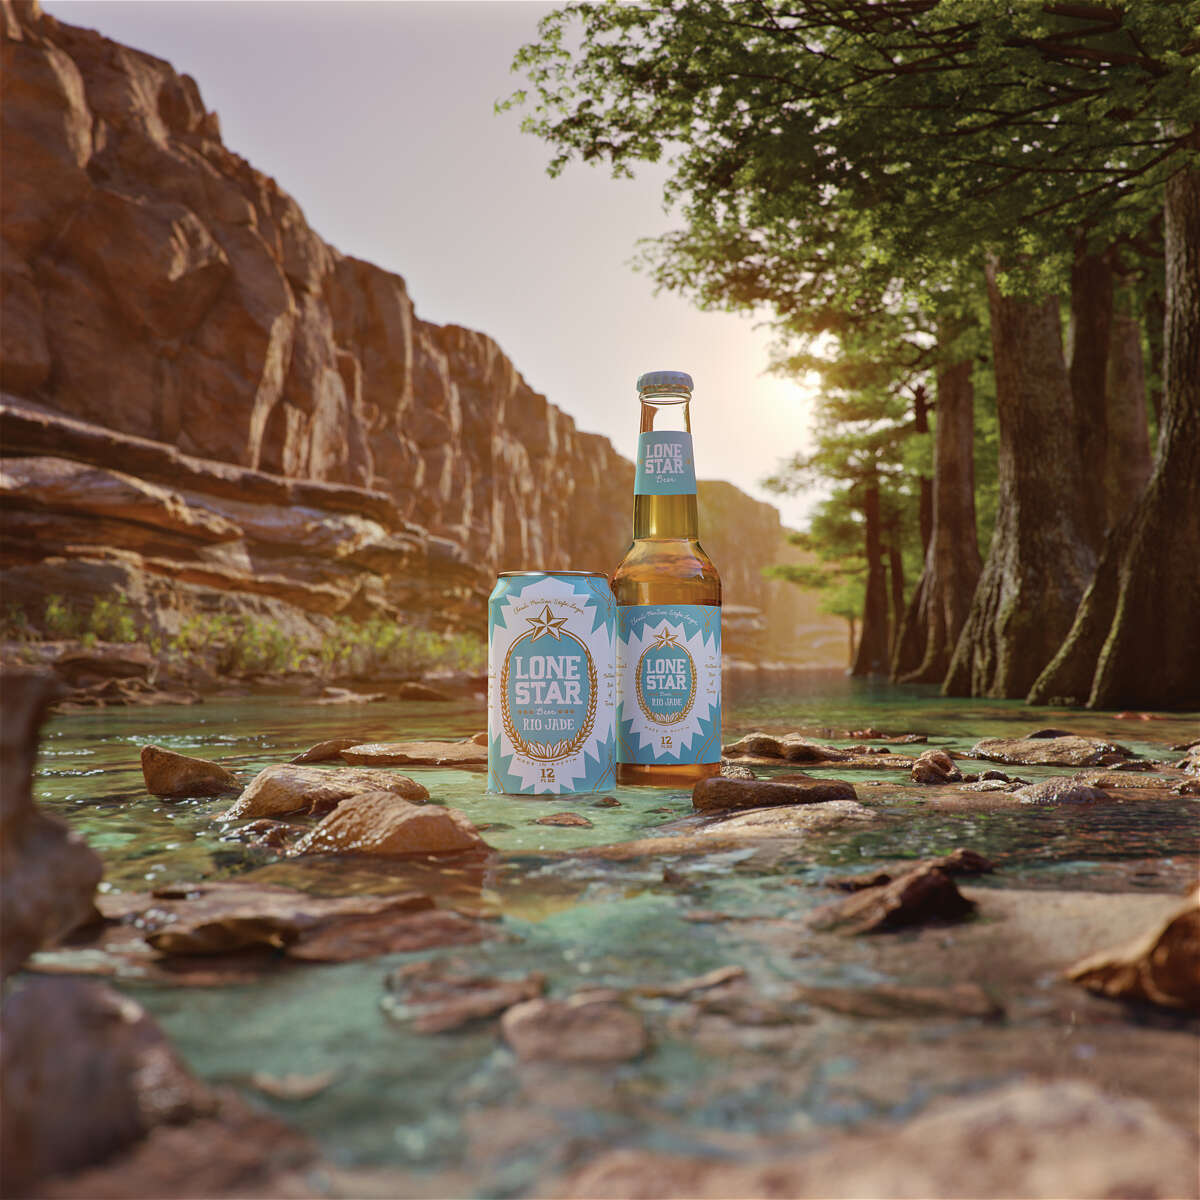 The new Lone Star beer will be available in Texas beginning at the end of this month with full distribution in May. The bright, turquoise packaging drinking-age shoppers will find on shelves comes from Burnt Nopal, the creative design studio founded in San Antonio by Olivia and Cruz Ortiz.